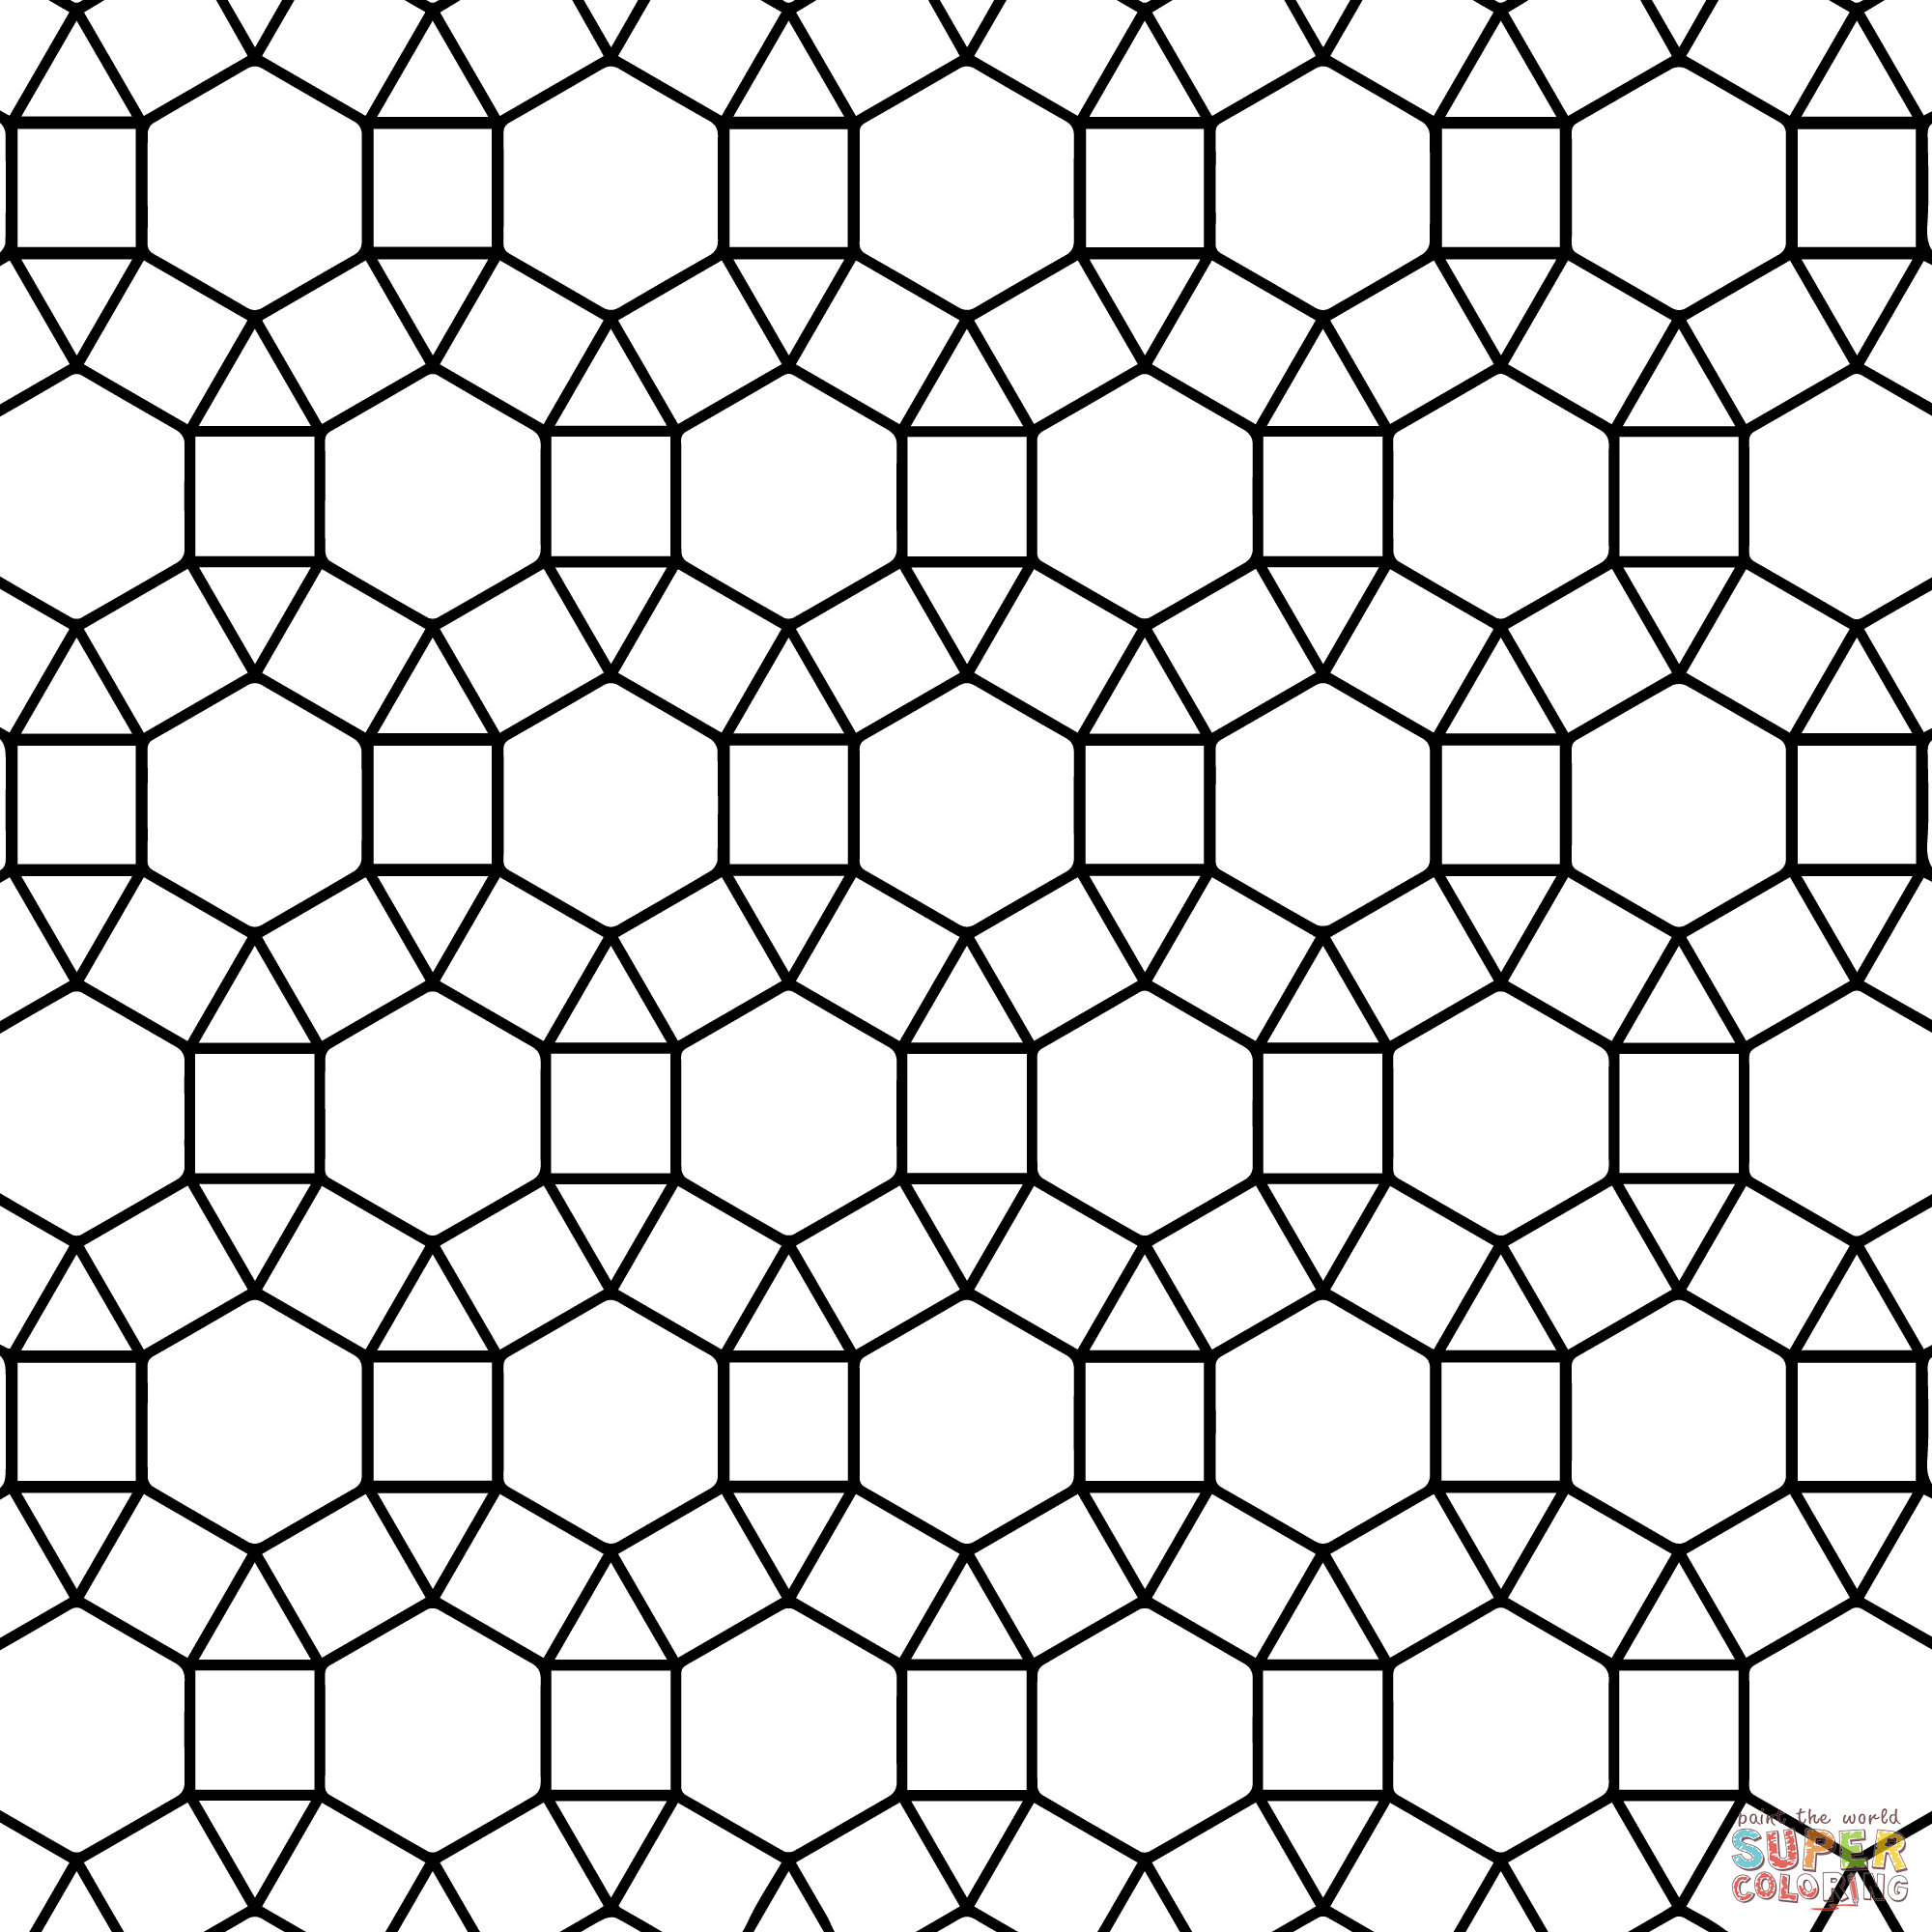 Worksheet Tessellation Worksheets To Color free tessellations coloring pages az tessellation with hexagon triangle and square page